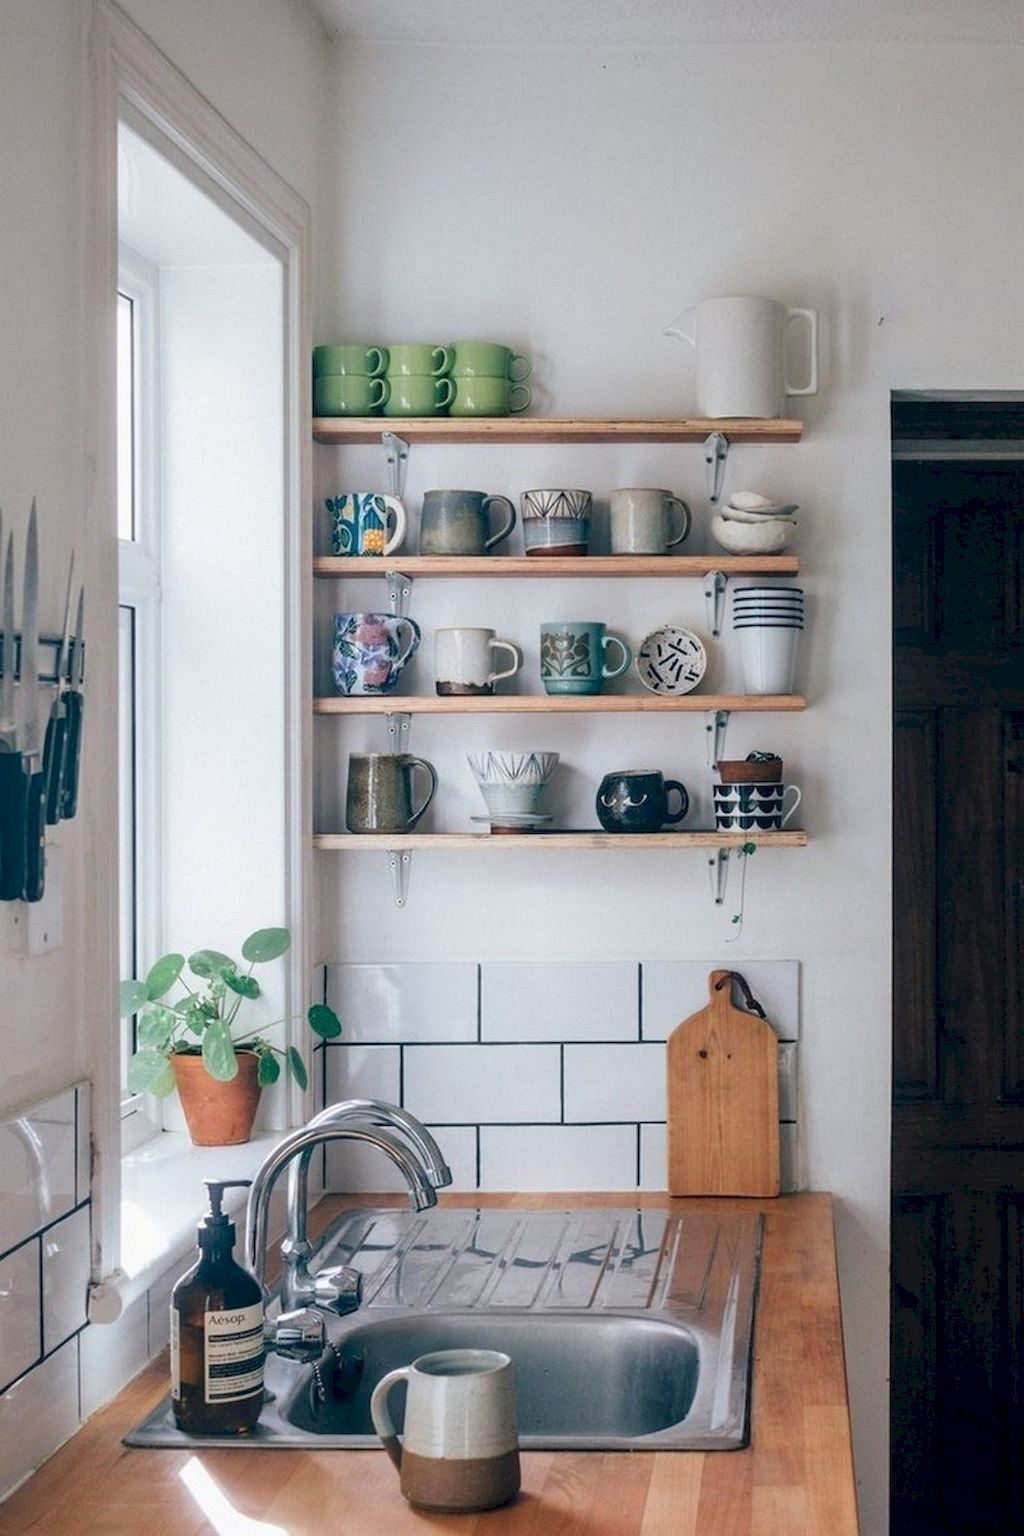 Simple decorating ideas for rental apartment toparchitecture